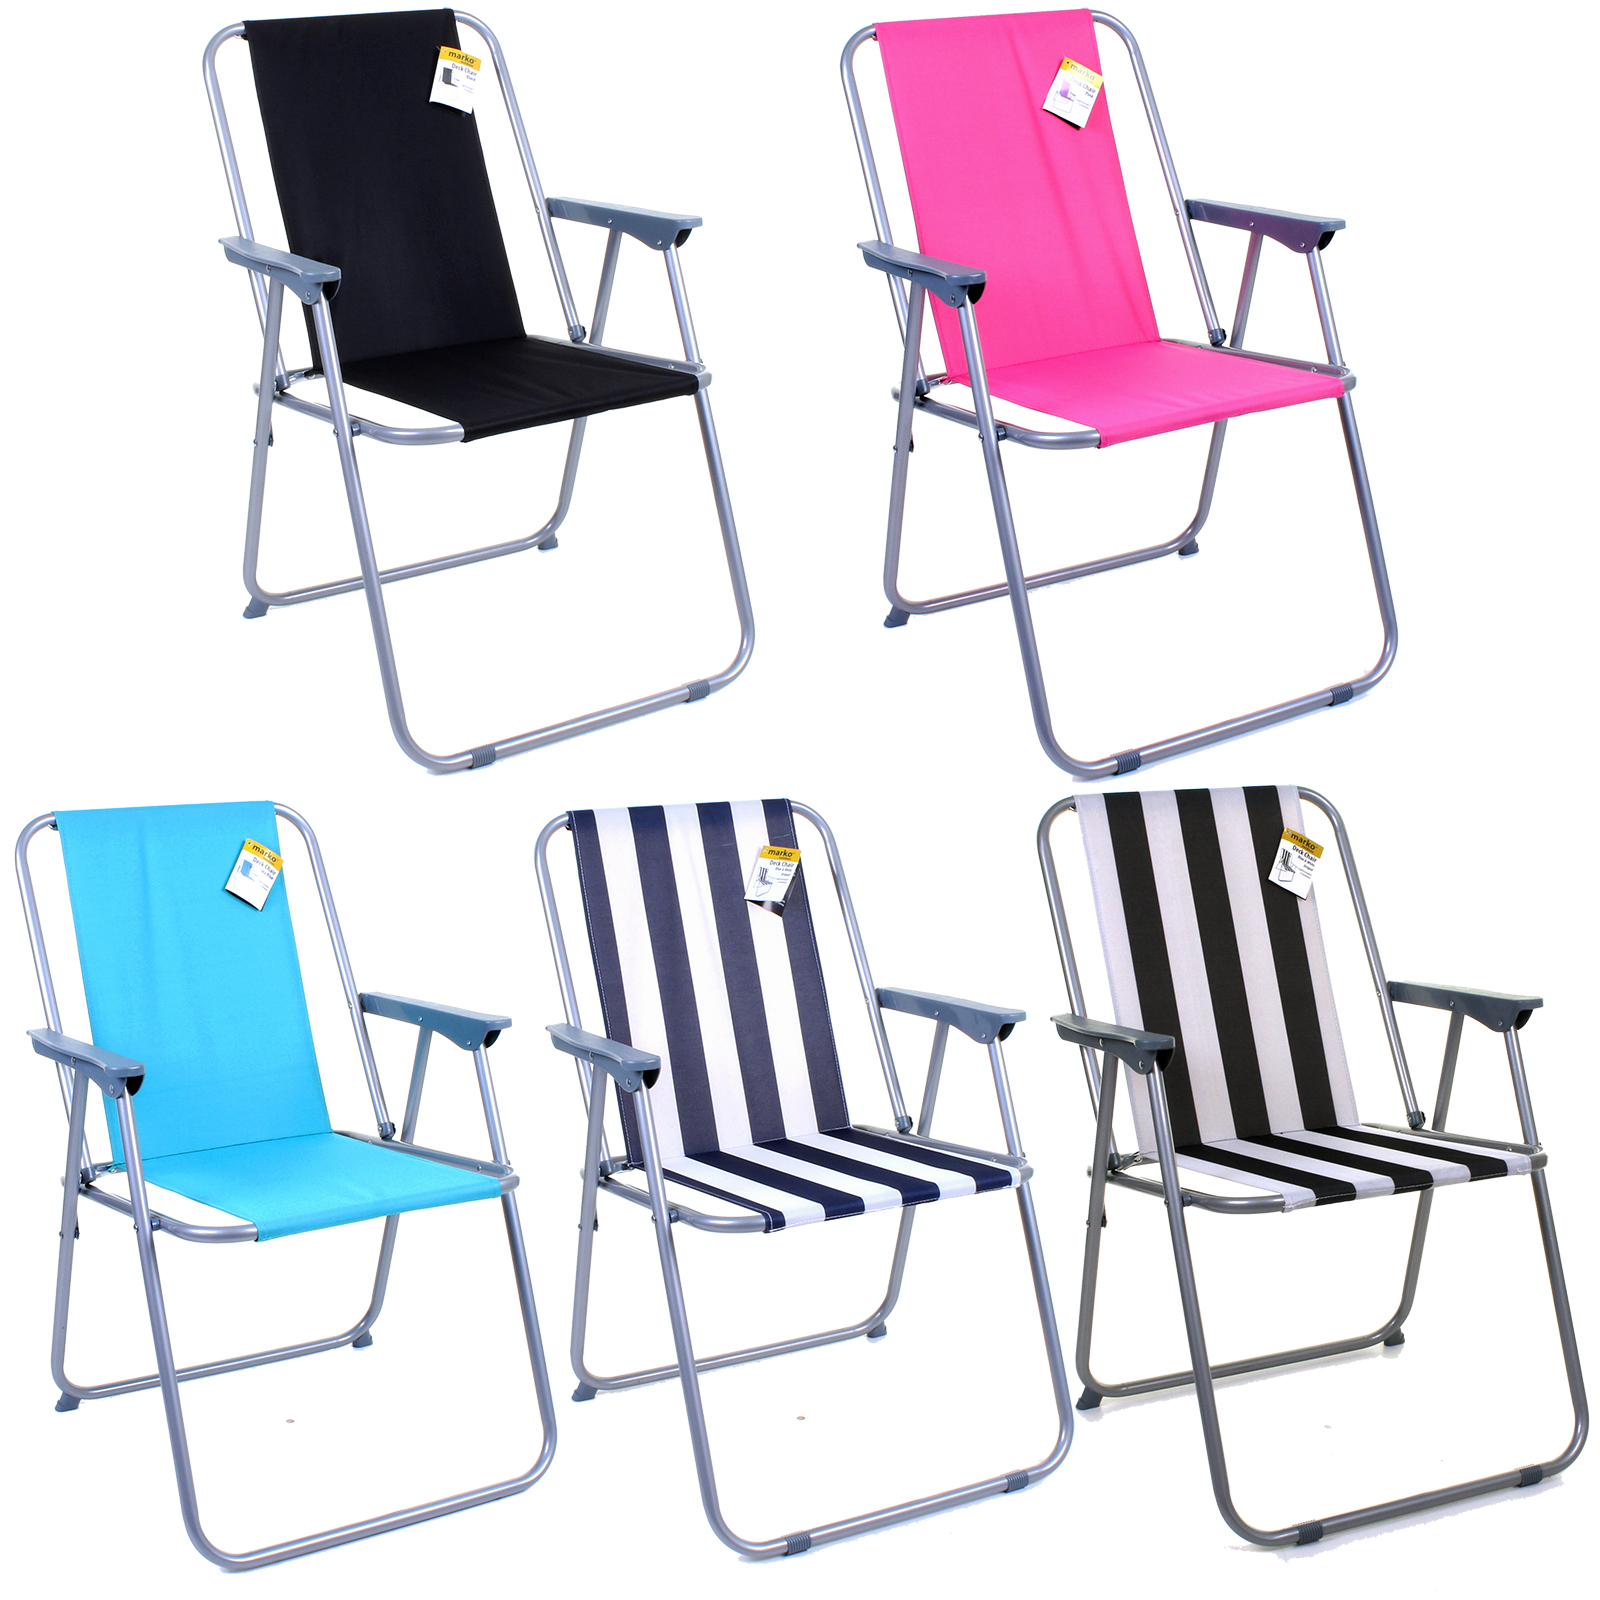 FOLDING DECK CHAIR OUTDOOR GARDEN PATIO BEACH BBQ CAMPING FISHING